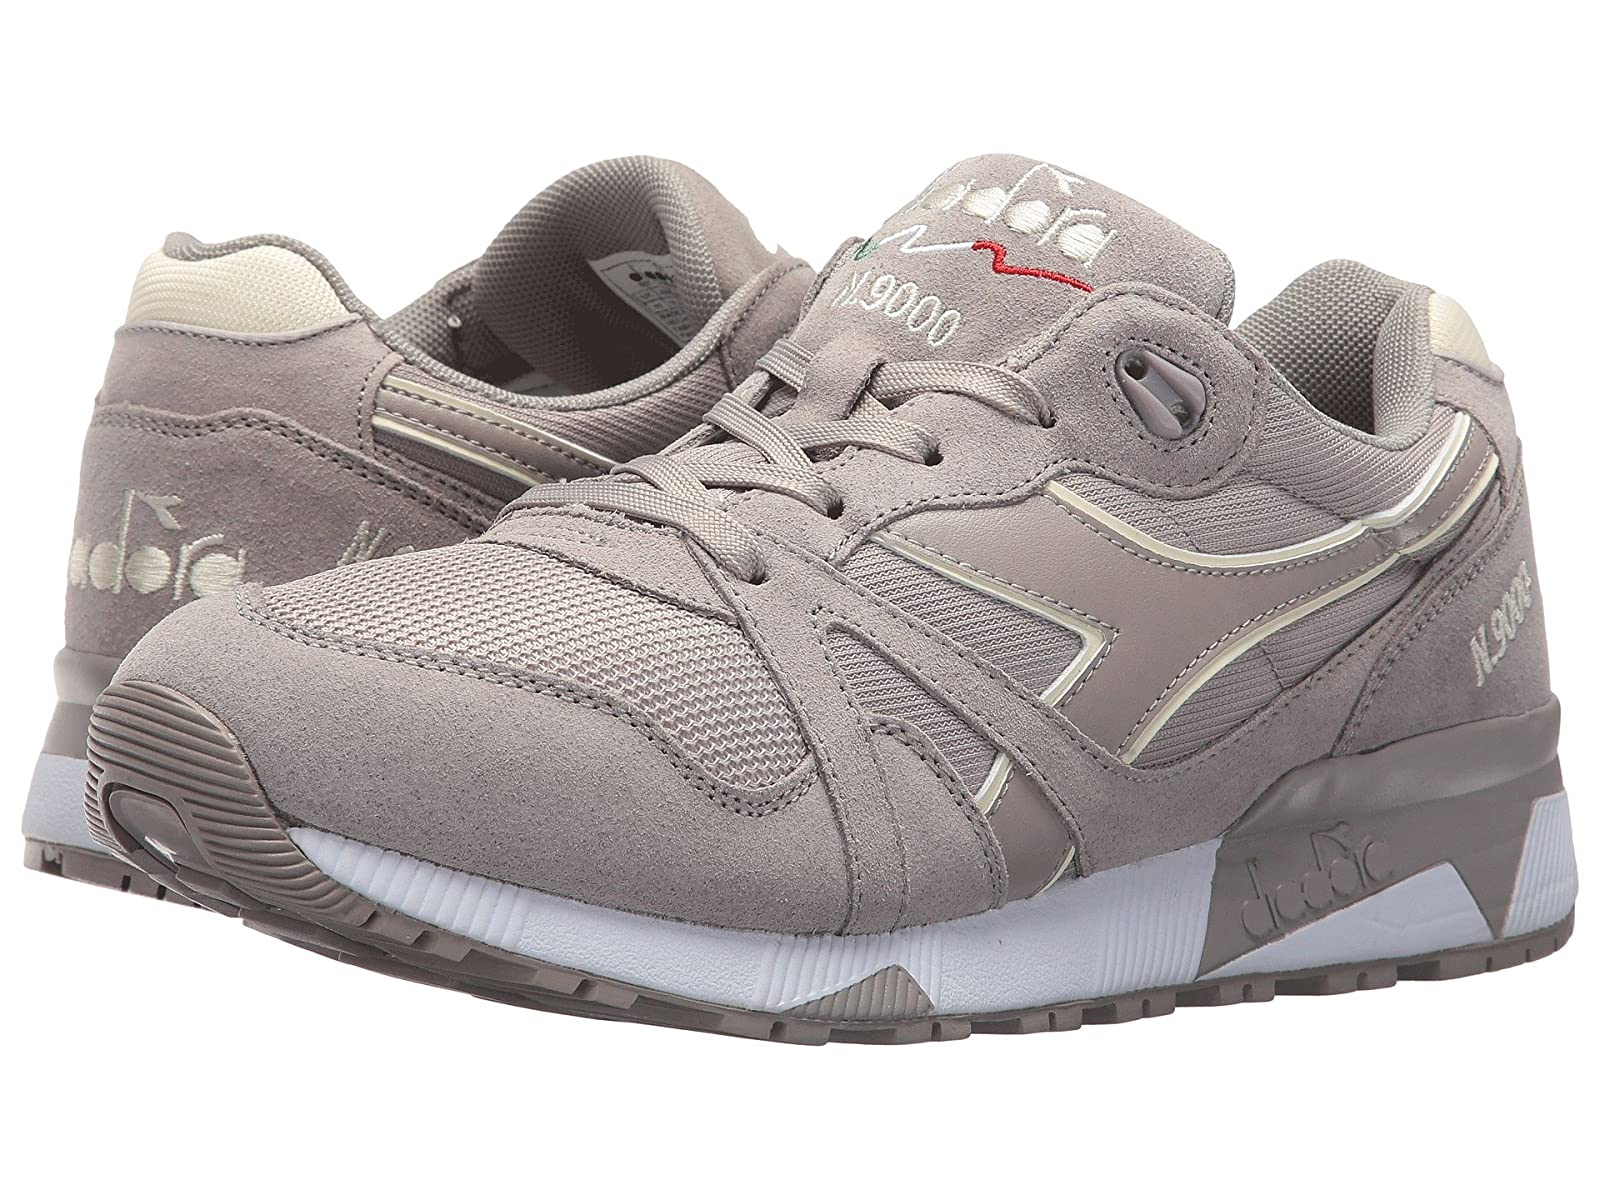 Diadora N9000 IIICheap and distinctive eye-catching shoes